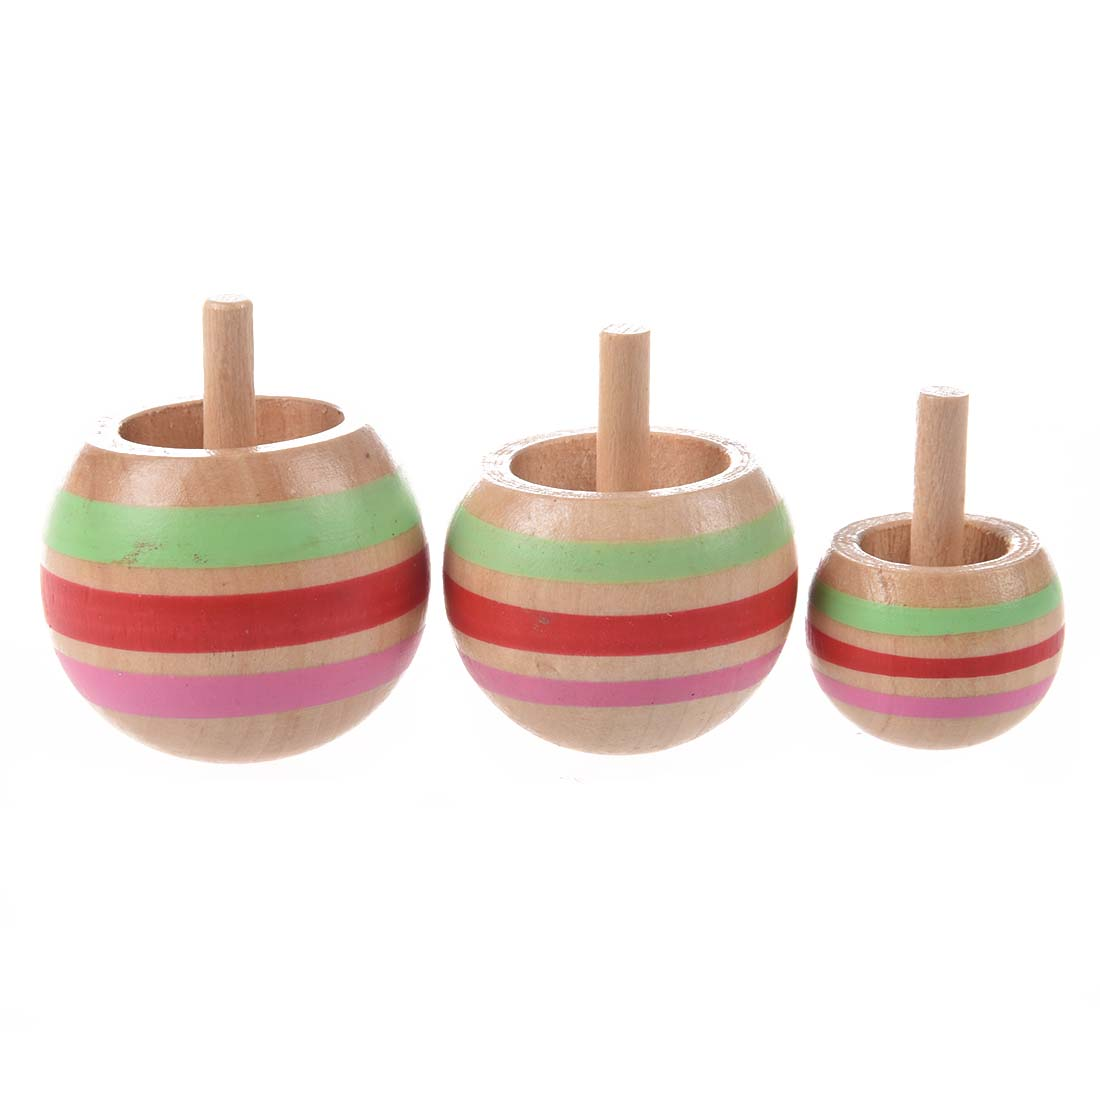 New 3pcs Wooden Colorful Spinning Top Kids Toy 3 Sizes for Children Above 3 Years Old